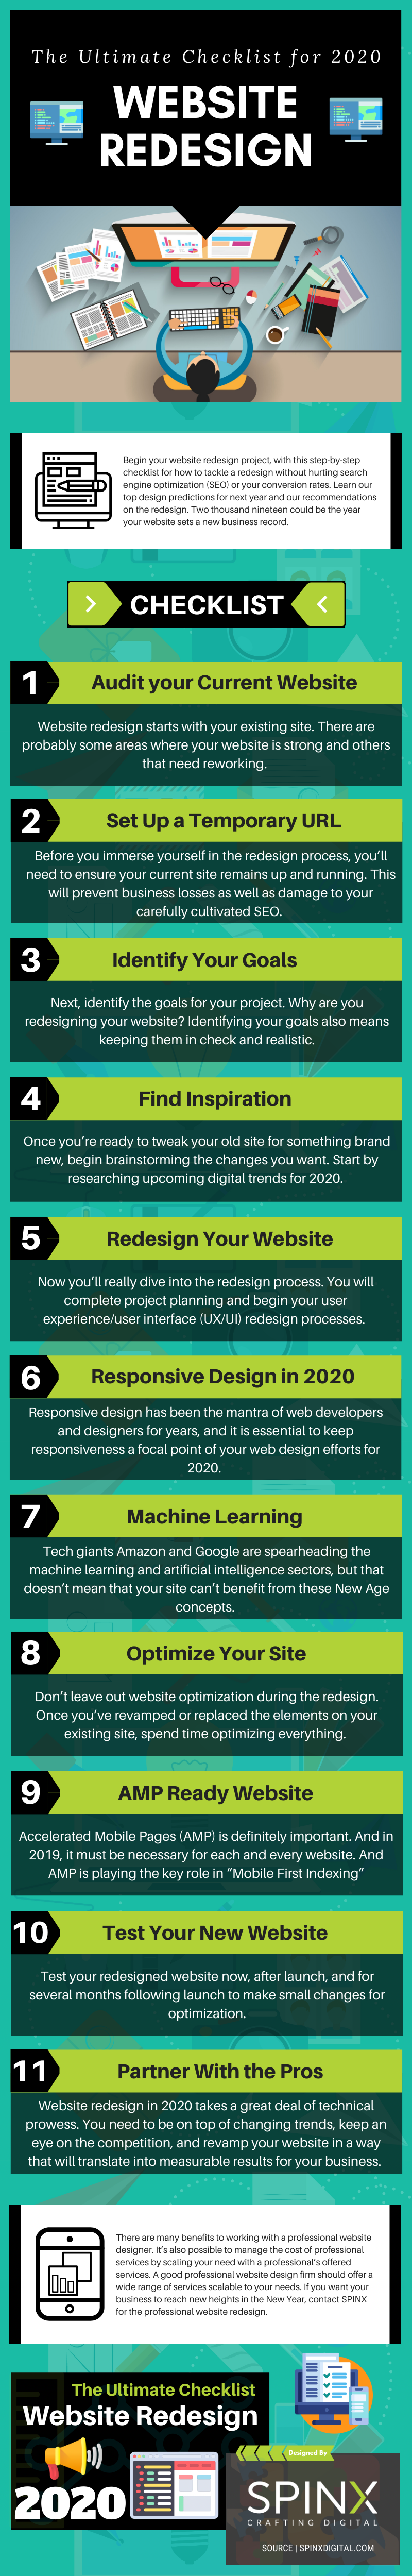 Website Redesign Checklist 2020